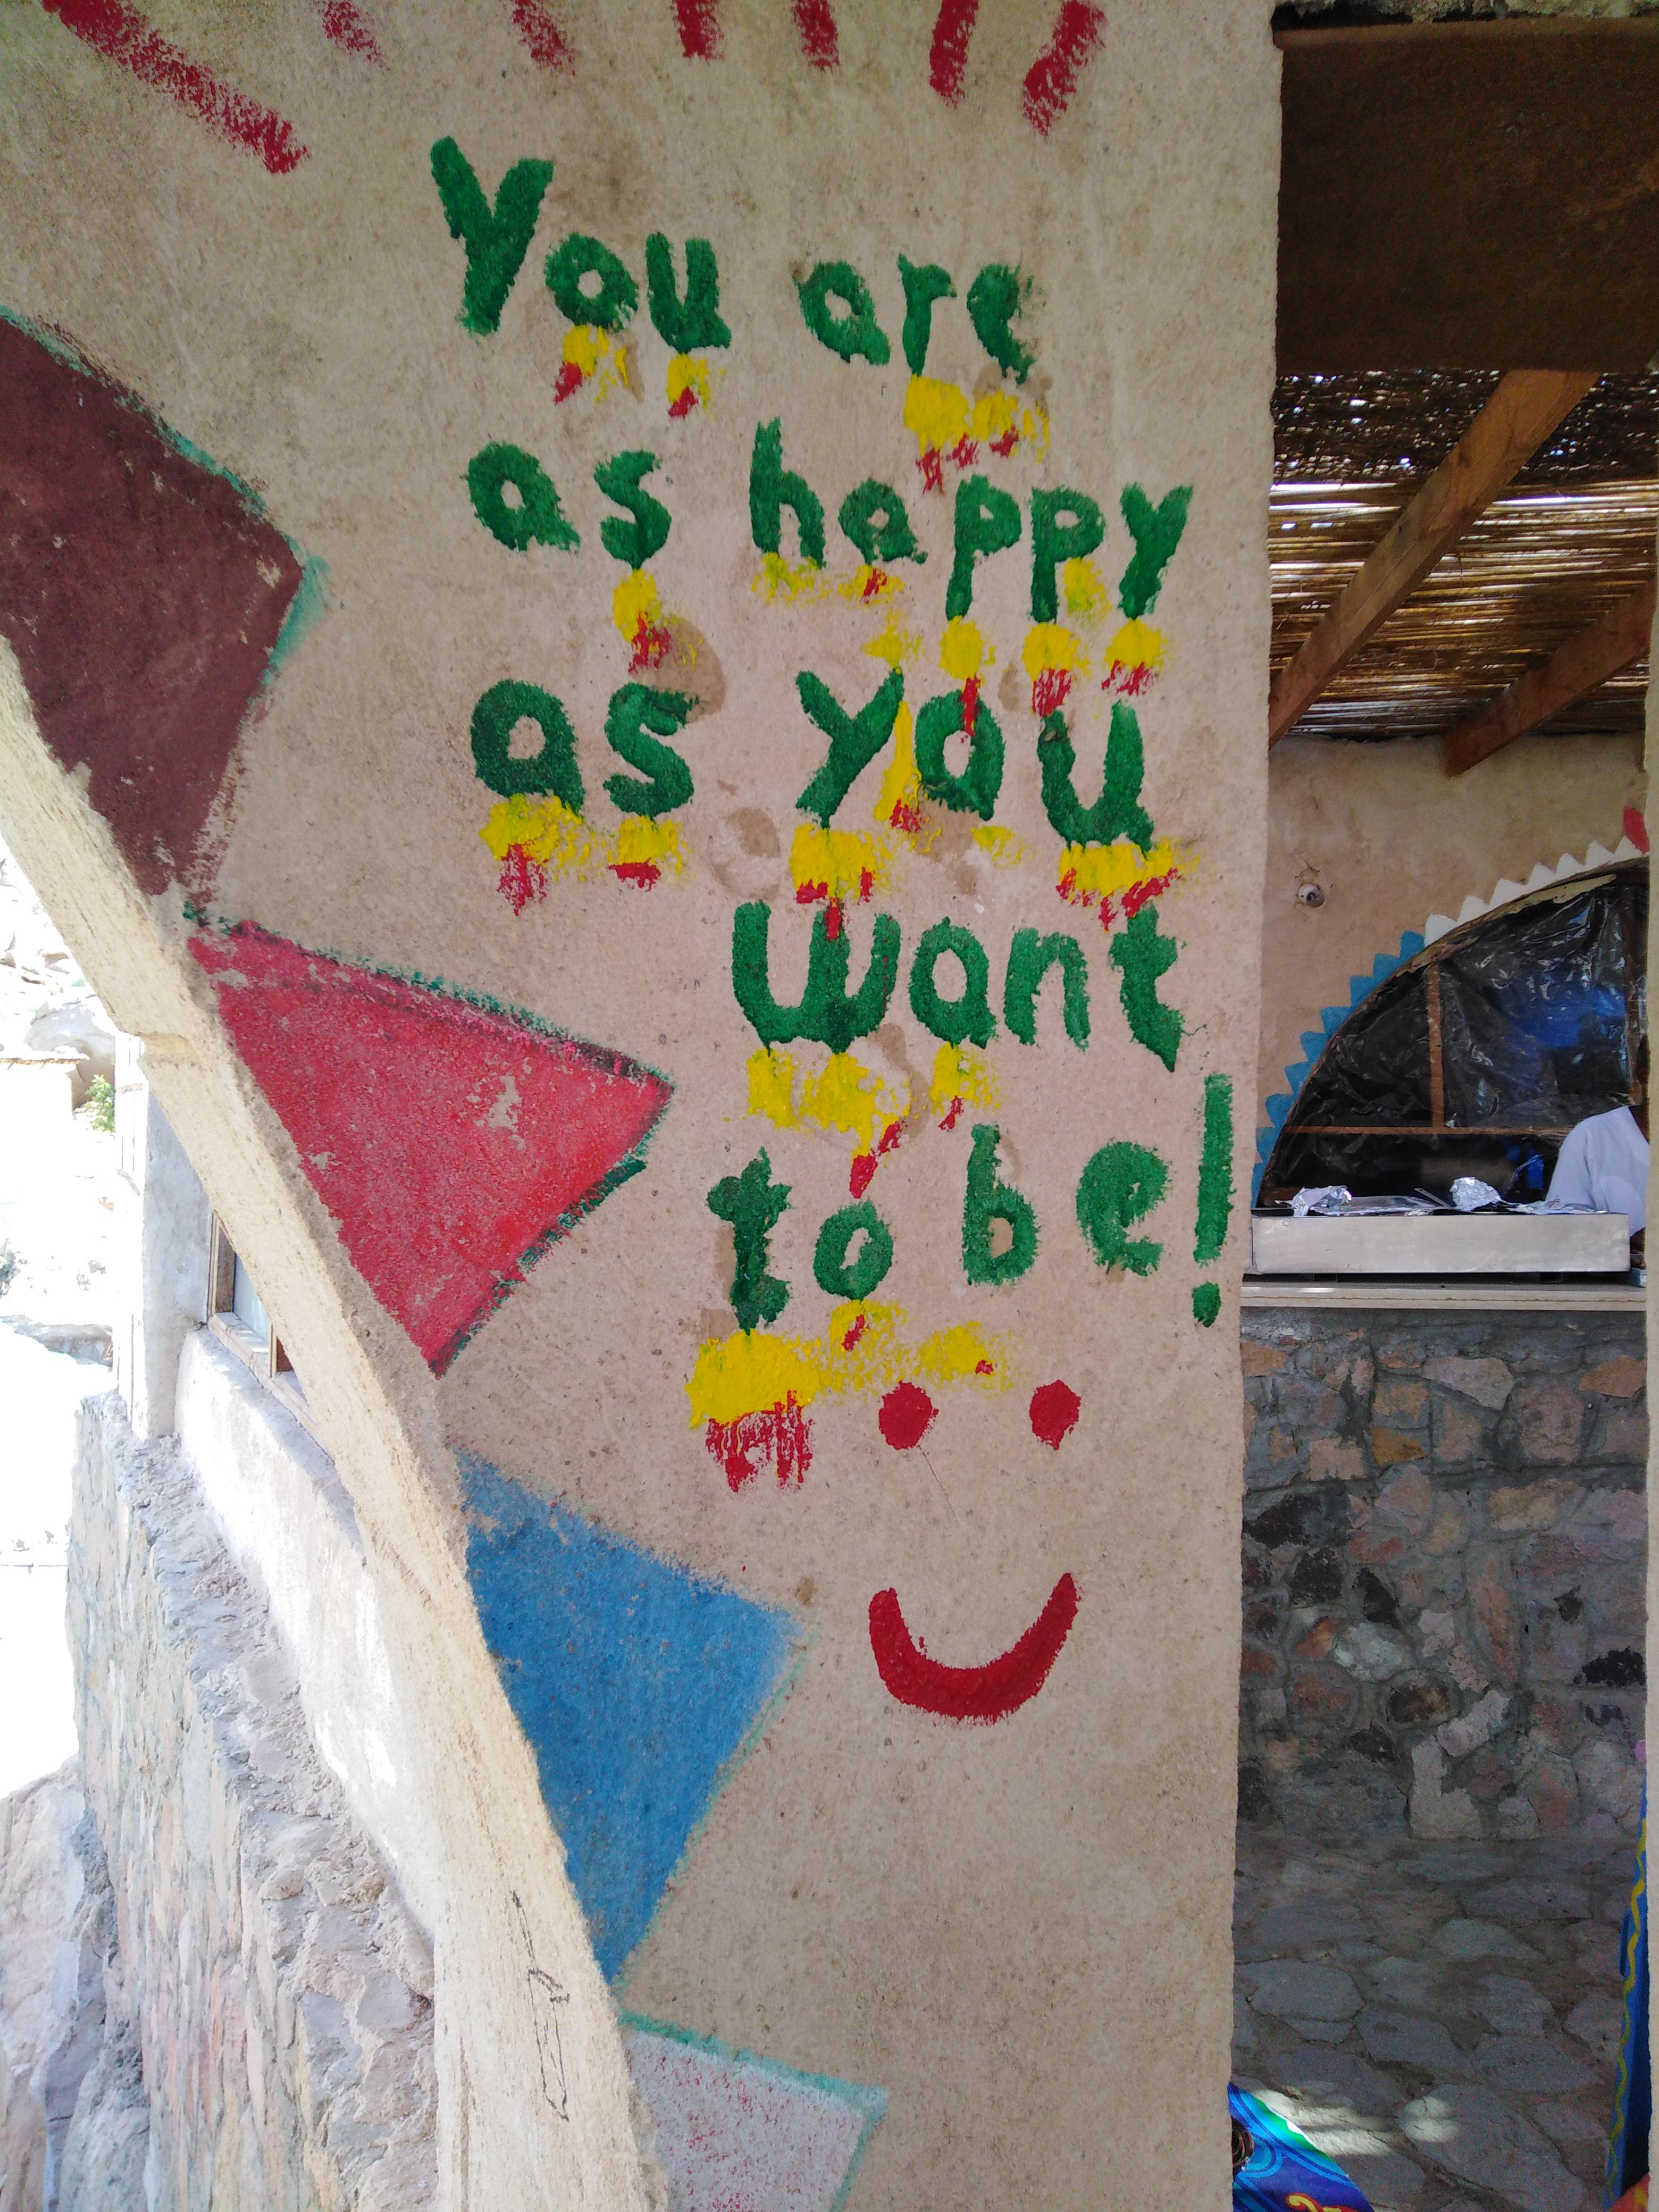 [Image] You are as happy as you want to be!